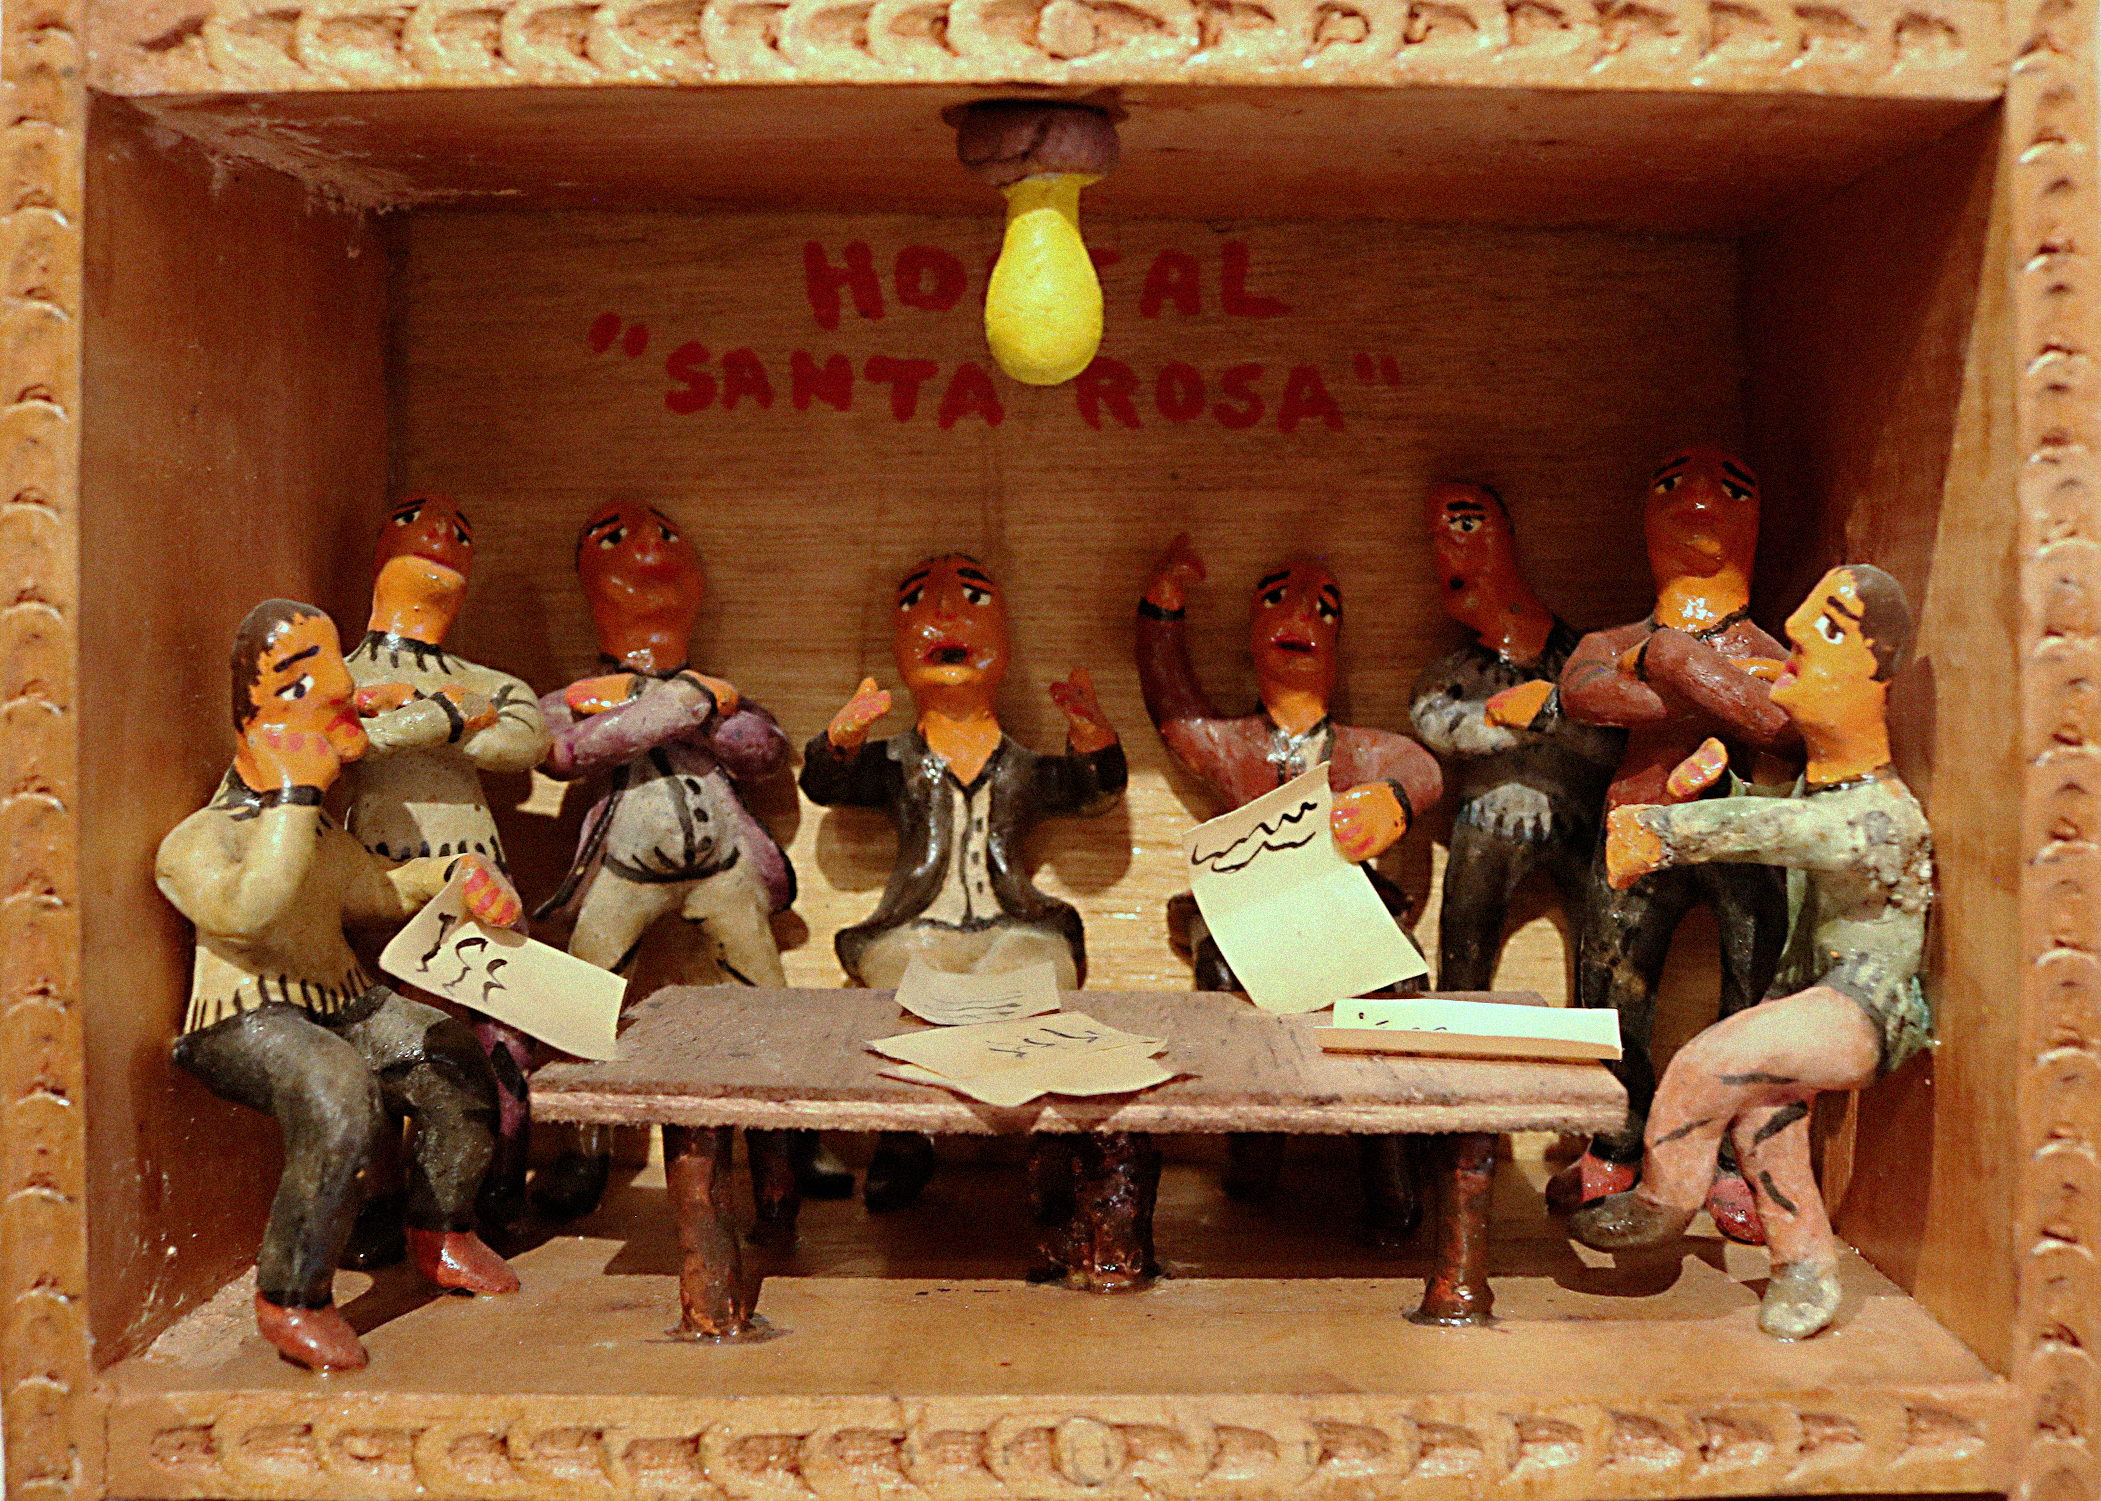 A scene called Reunion within a retablo. The scene portrays eight men gathered around a table. There are papers scattered on the table and two men hold papers. All the men have looks of anguish or sadness on their faces.